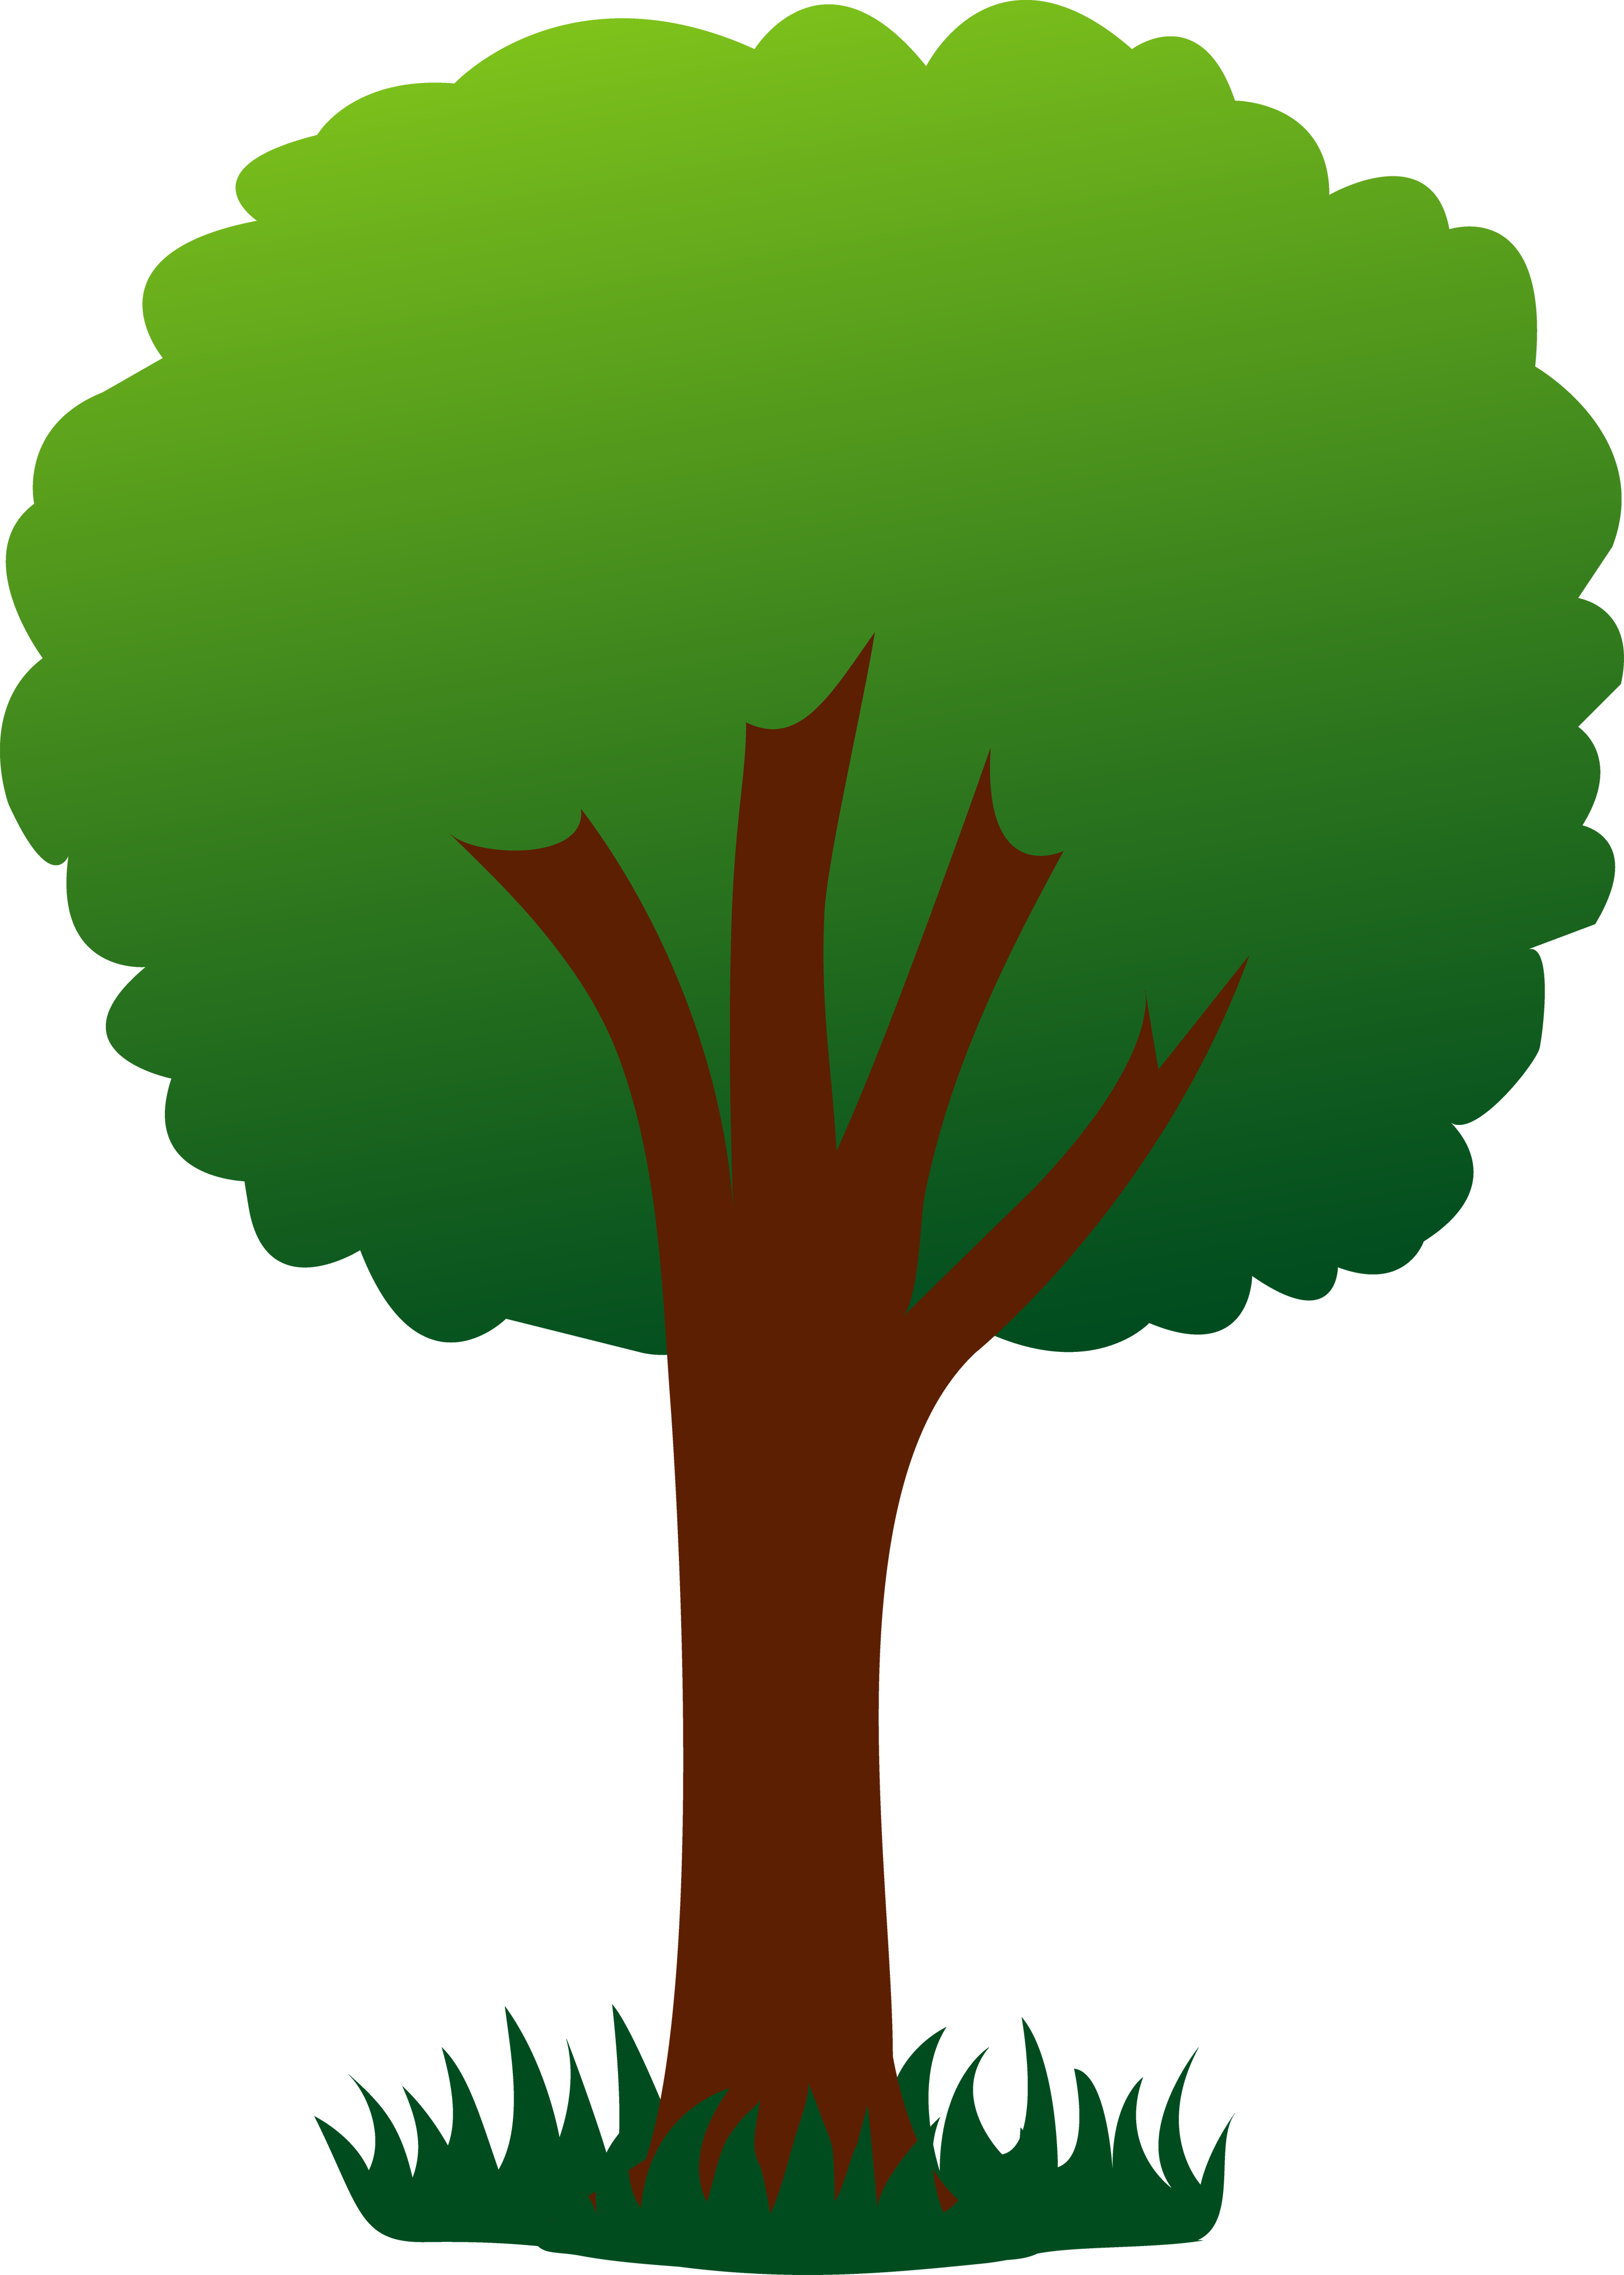 Simple Green Tree in Grass.